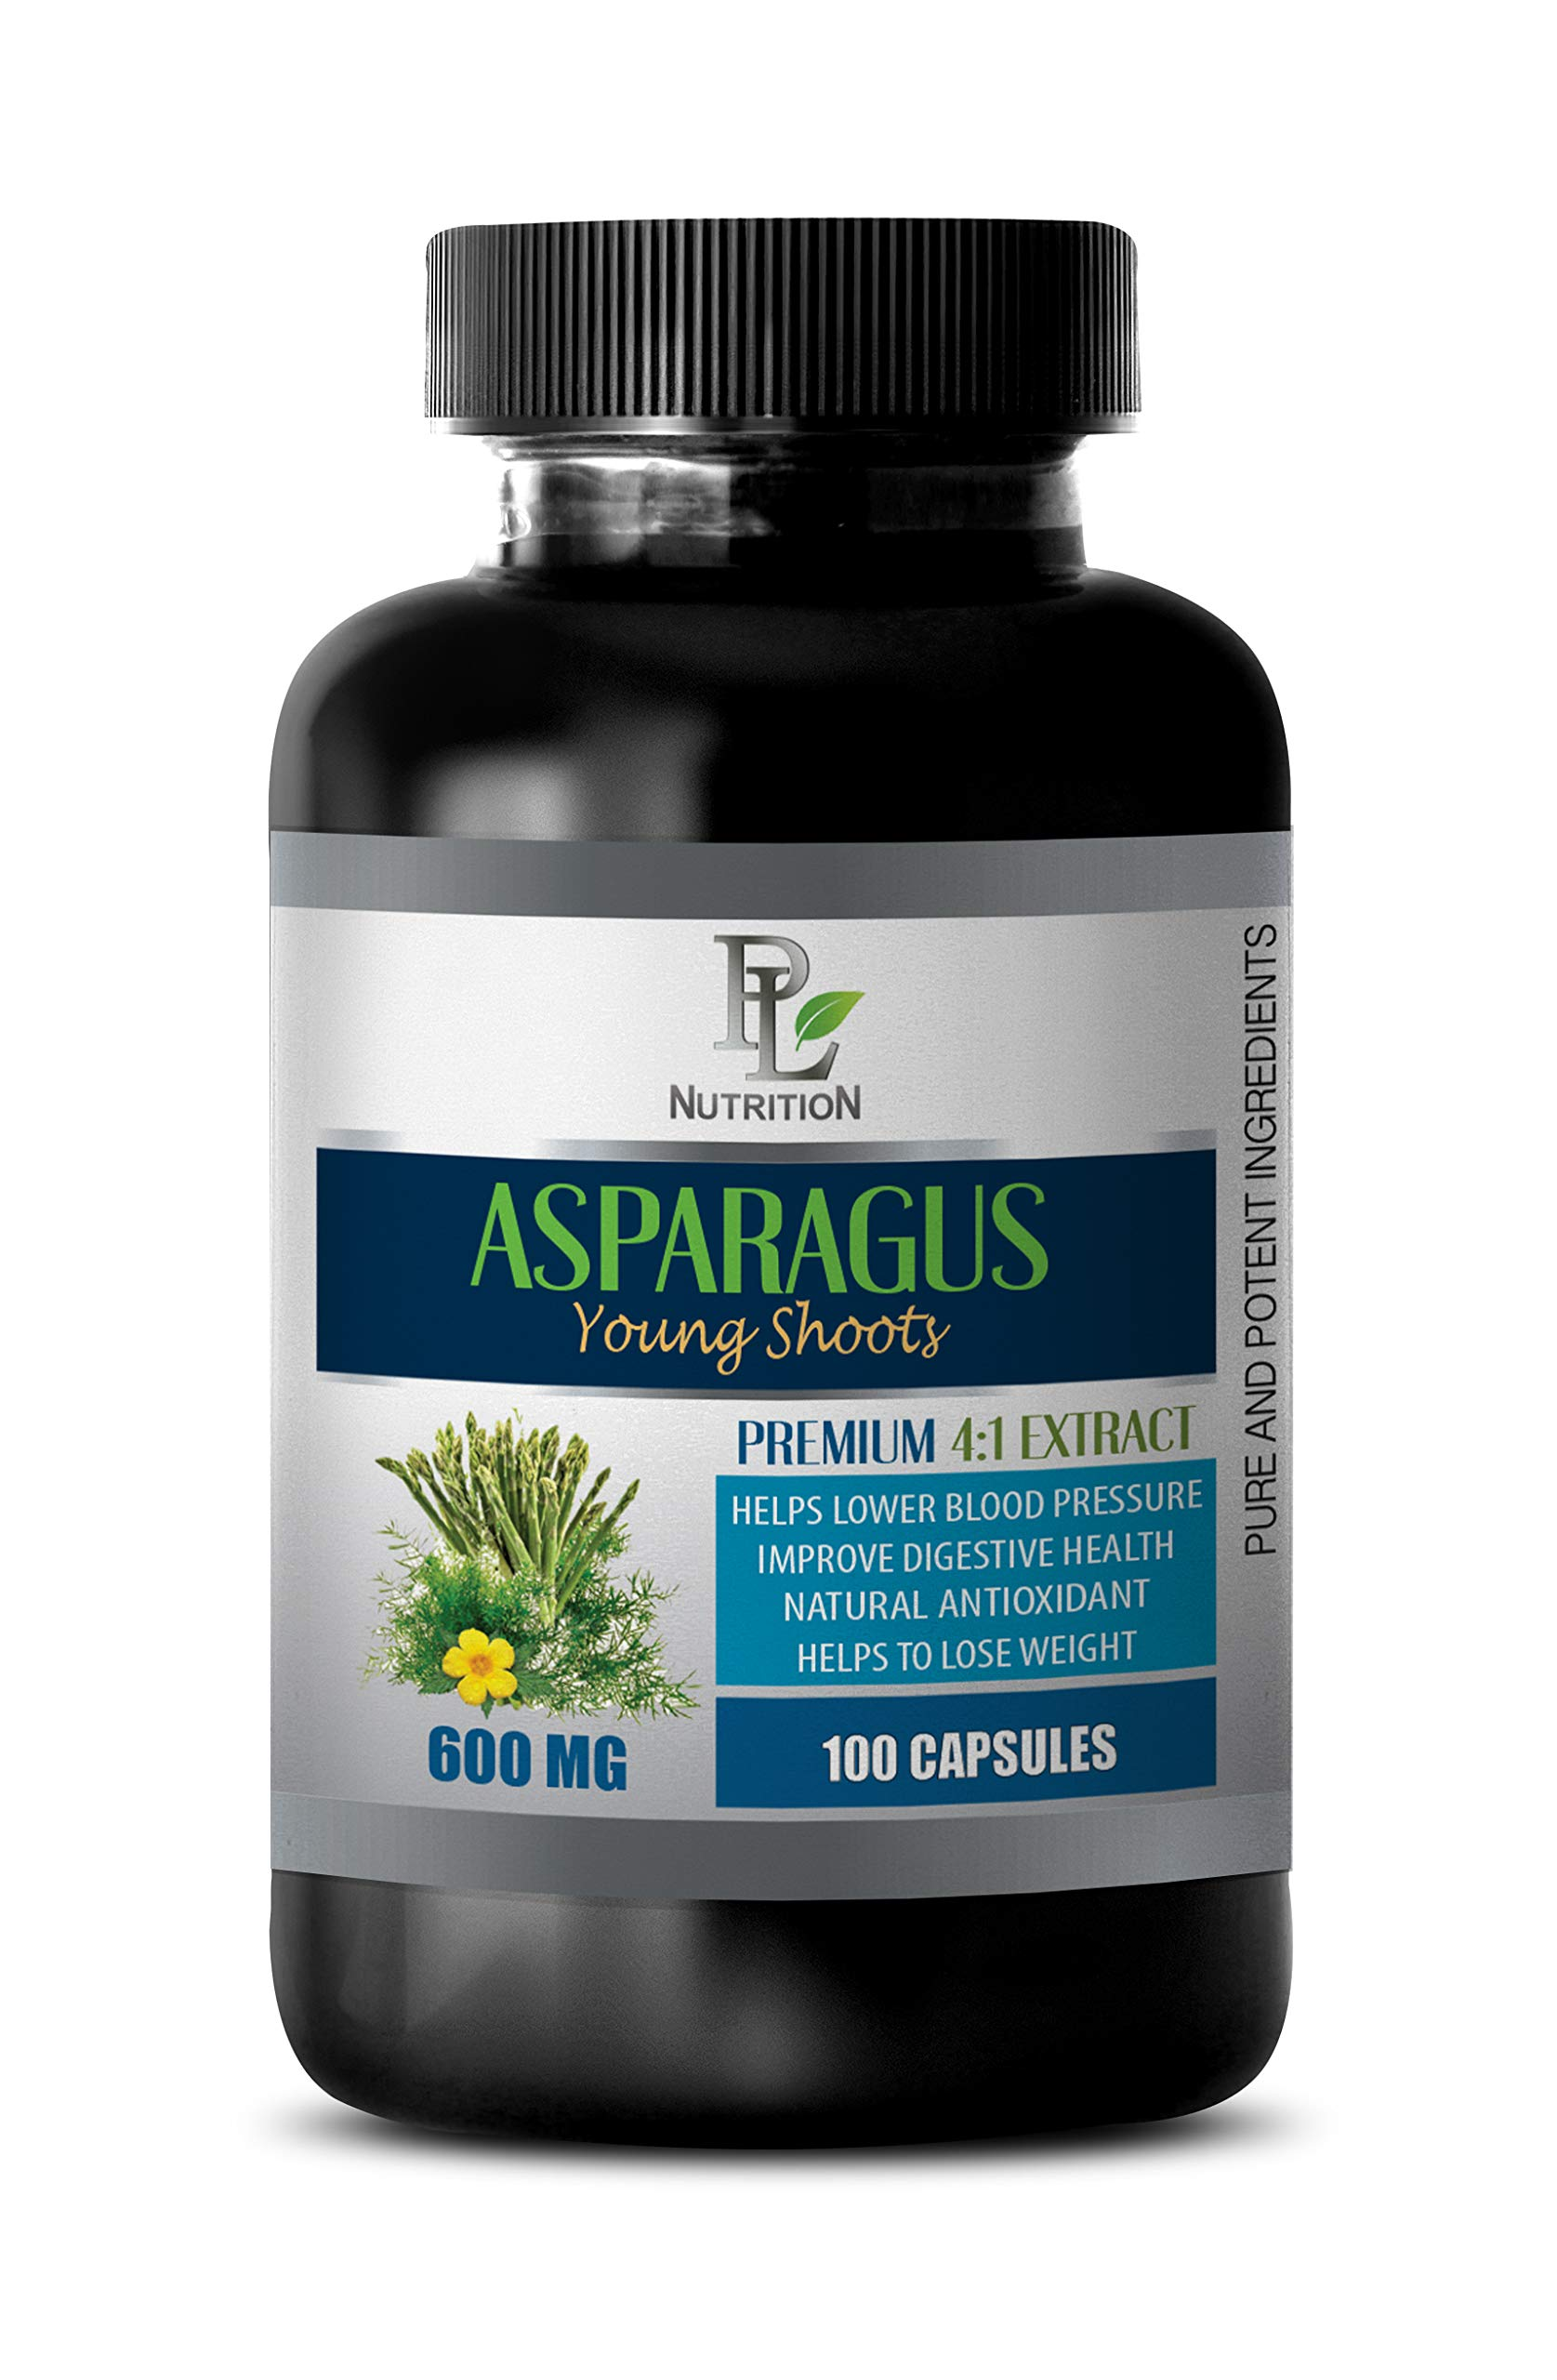 Blood Pressure lowering Supplement - Asparagus Young Shoots Extract 600MG - Premium 4:1 Extract - Asparagus Root Capsules - 1 Bottle 100 Capsules